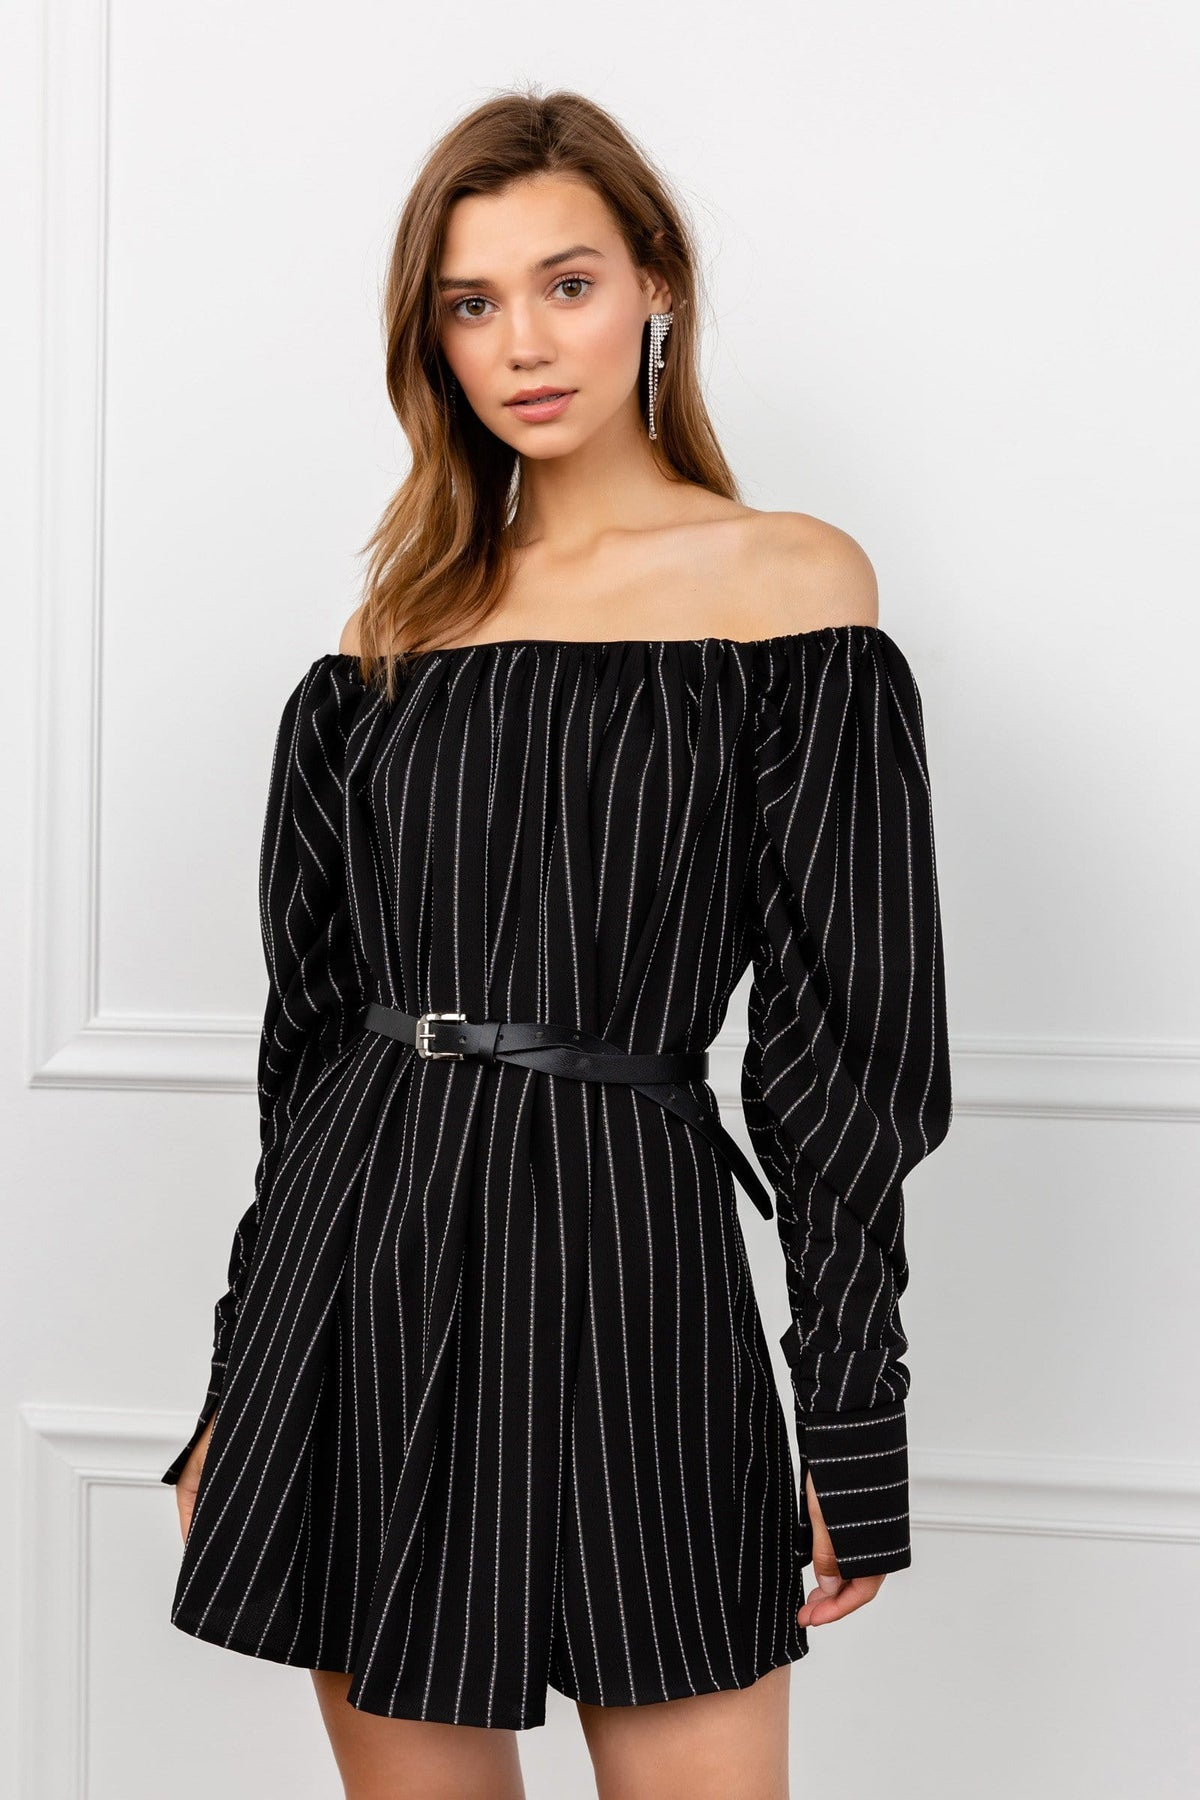 Black Off the Shoulder Striped Mini Dress with Belted Waist and Long Sleeves | J.ING